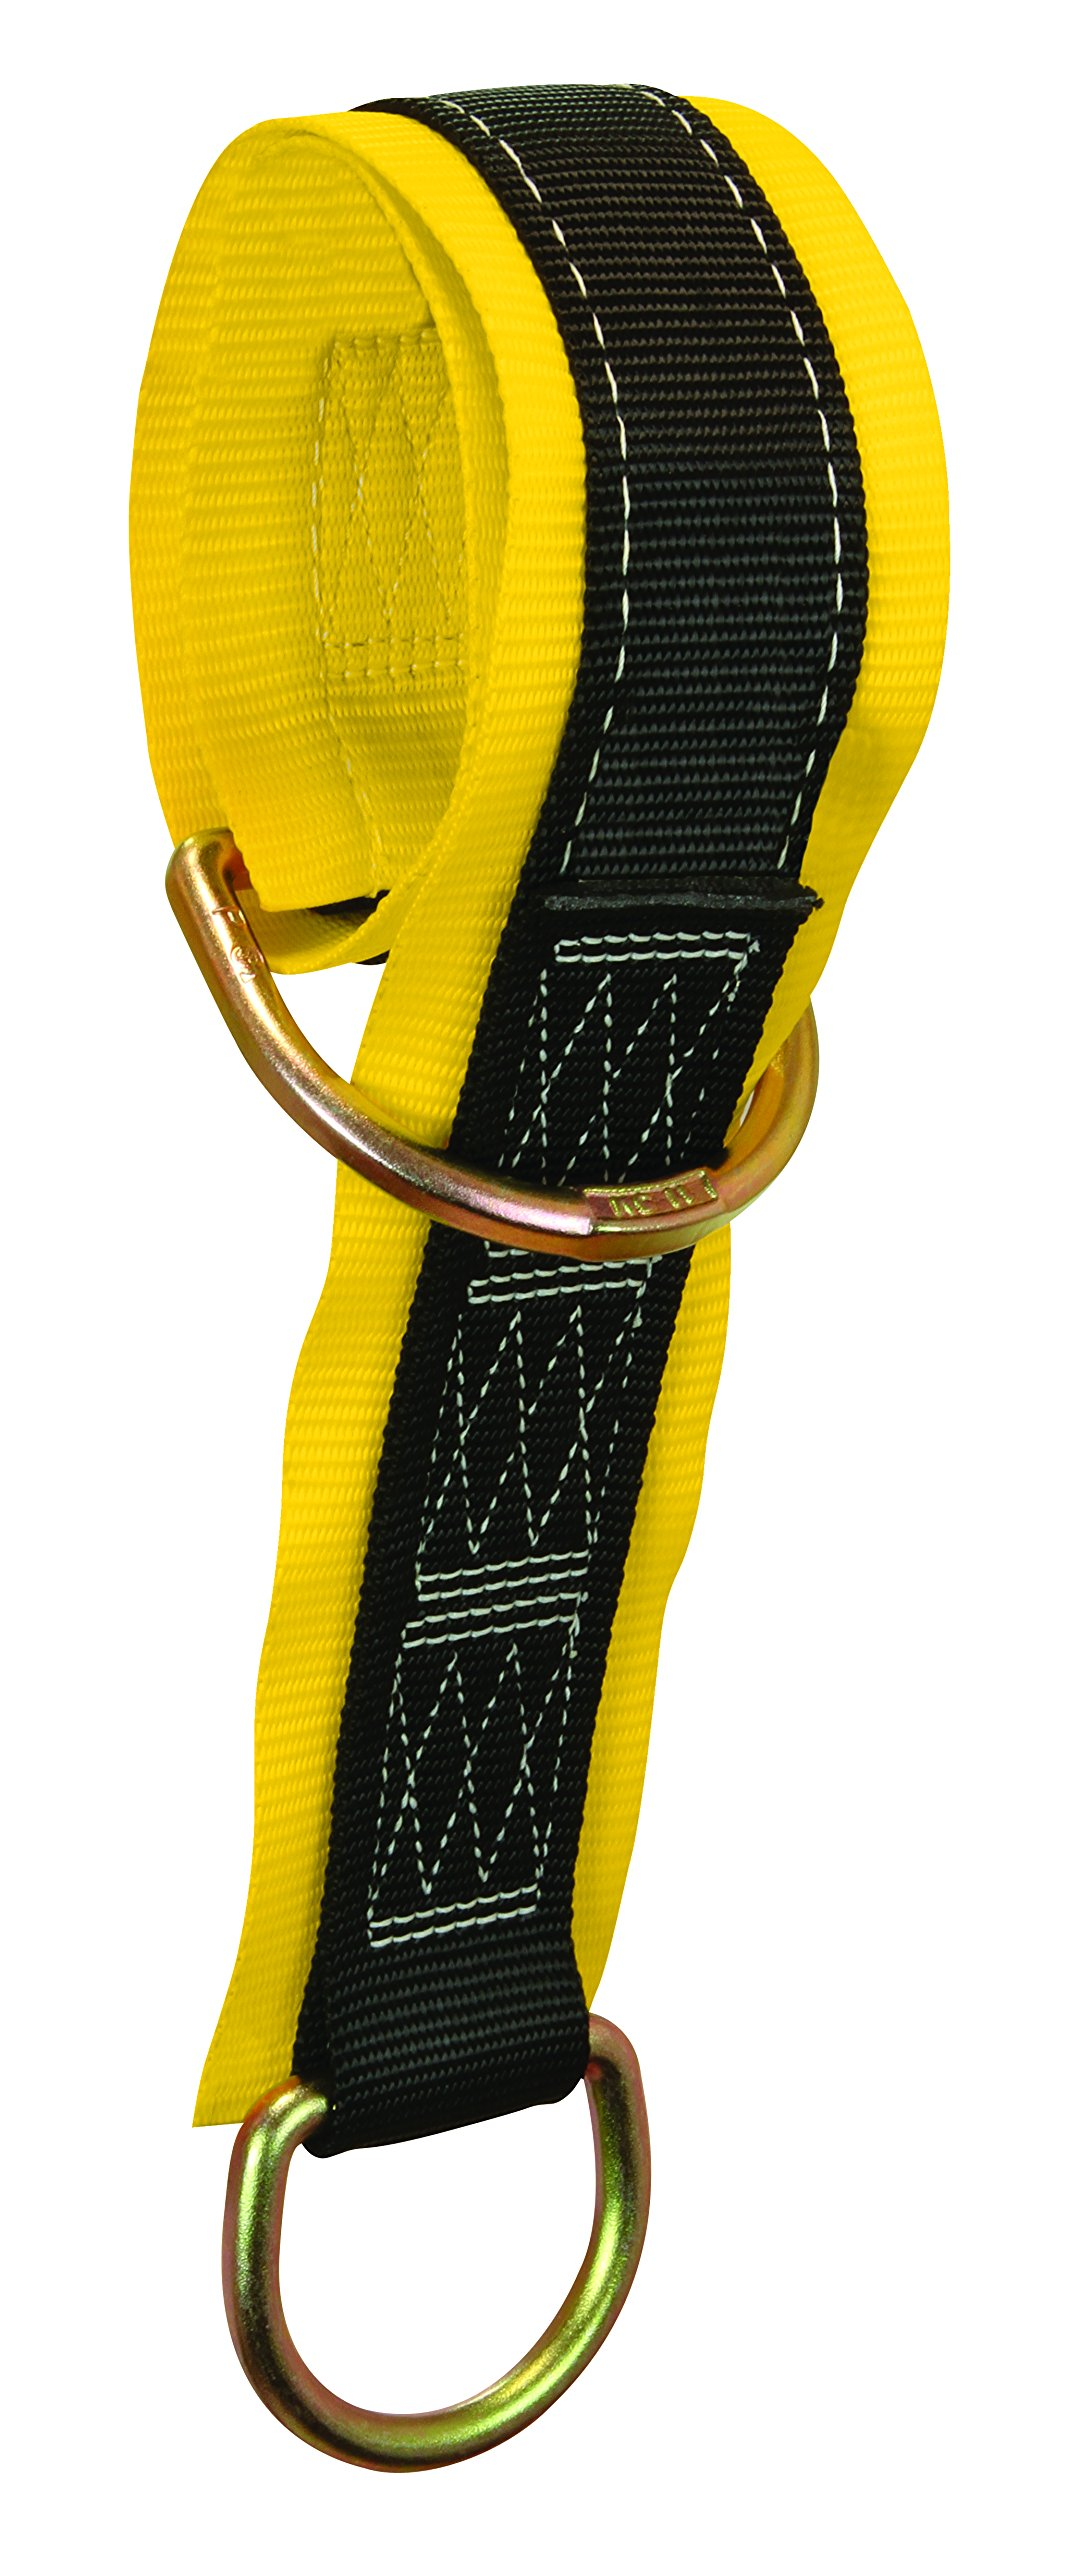 FallTech 7348 Pass-Thru Web Anchor Sling, 4-Foot by FallTech